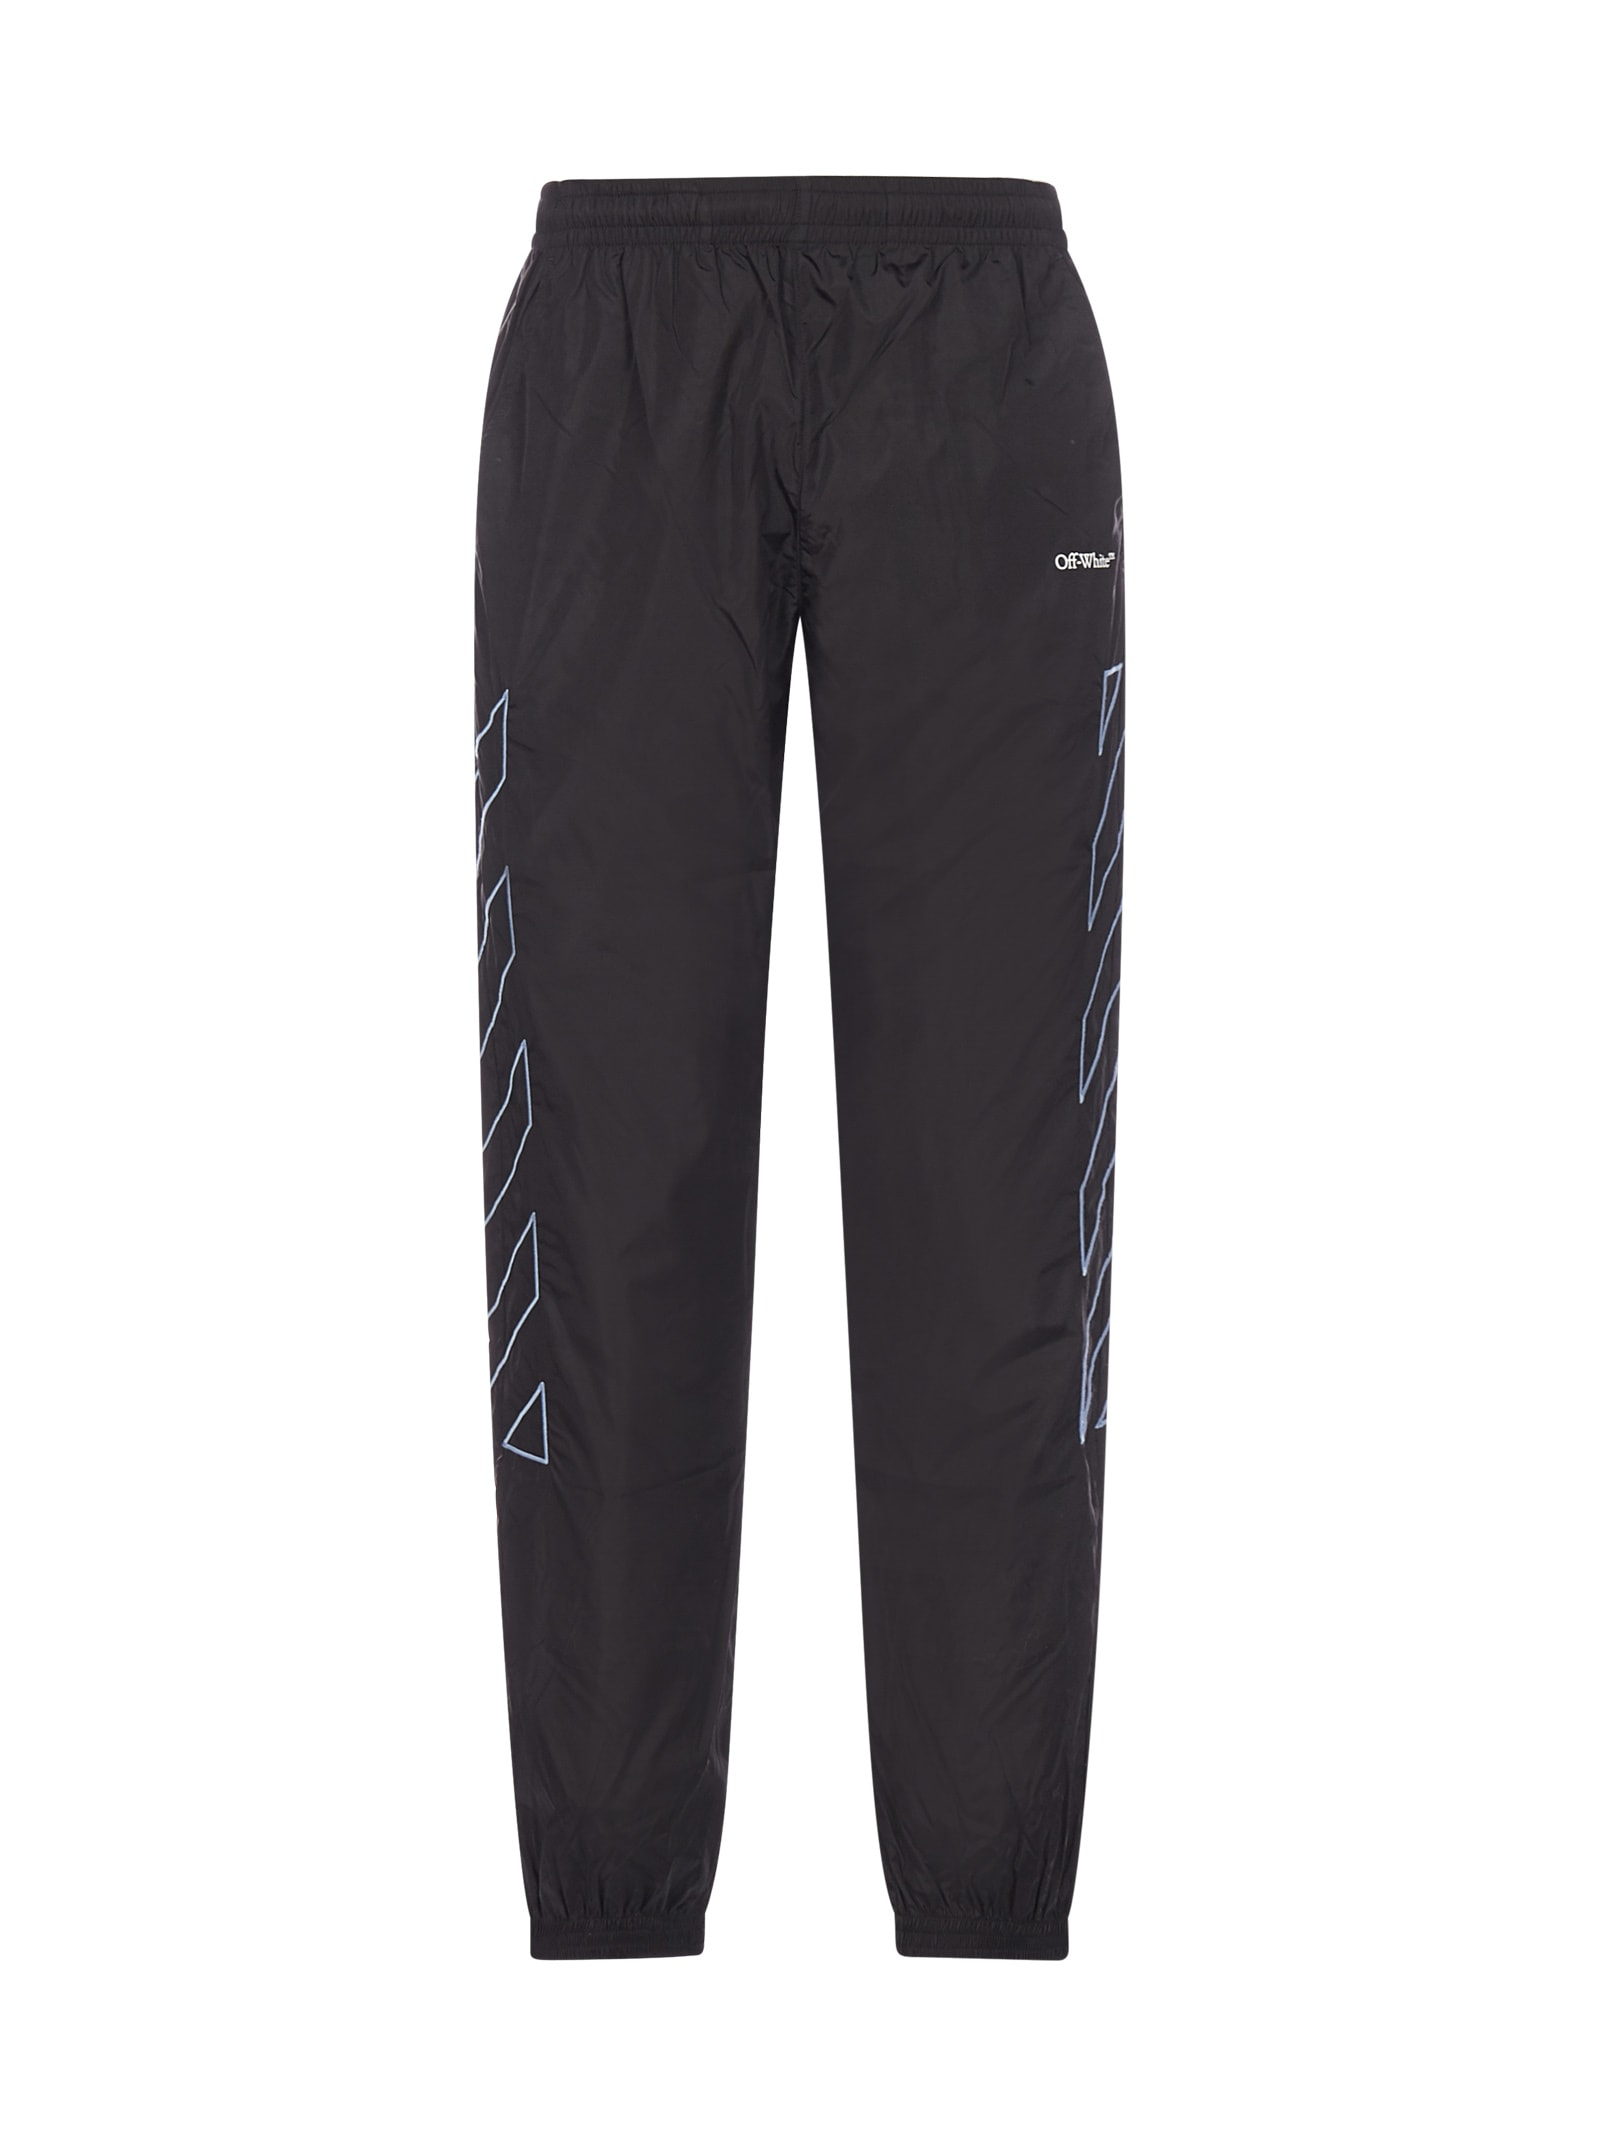 Off-White Diagonals Nylon Track Pants